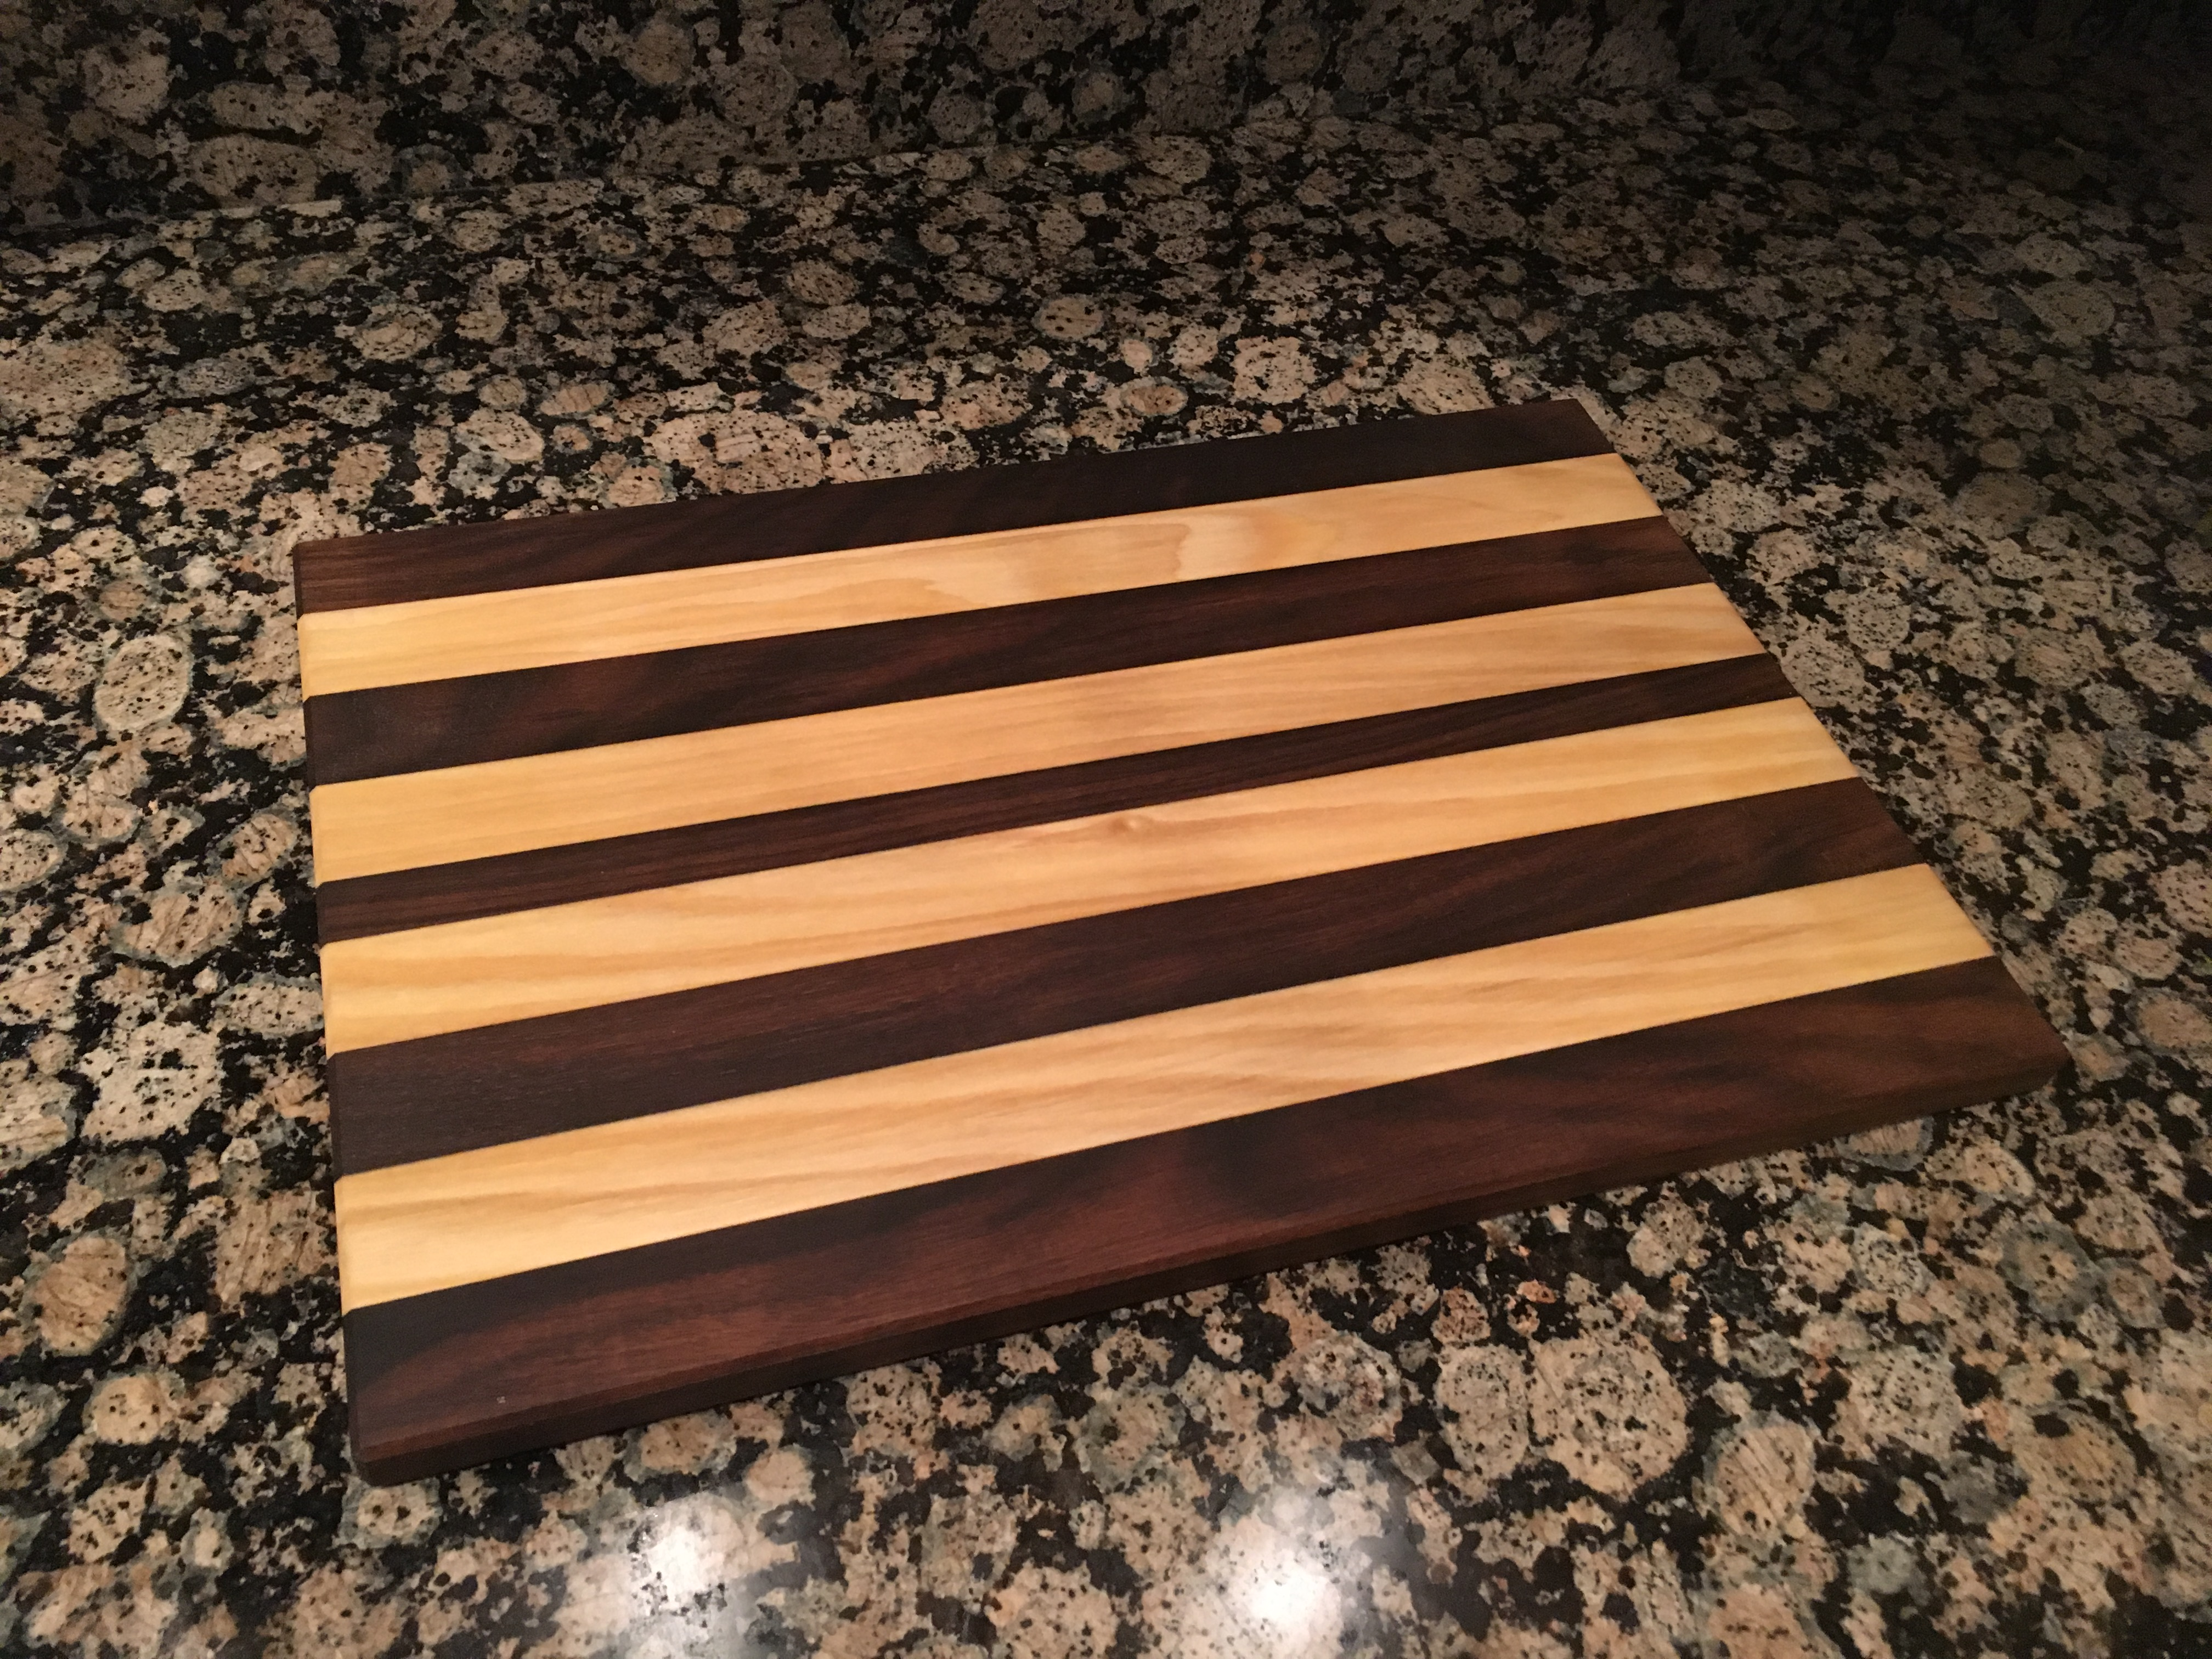 Straight Line Cutting Board